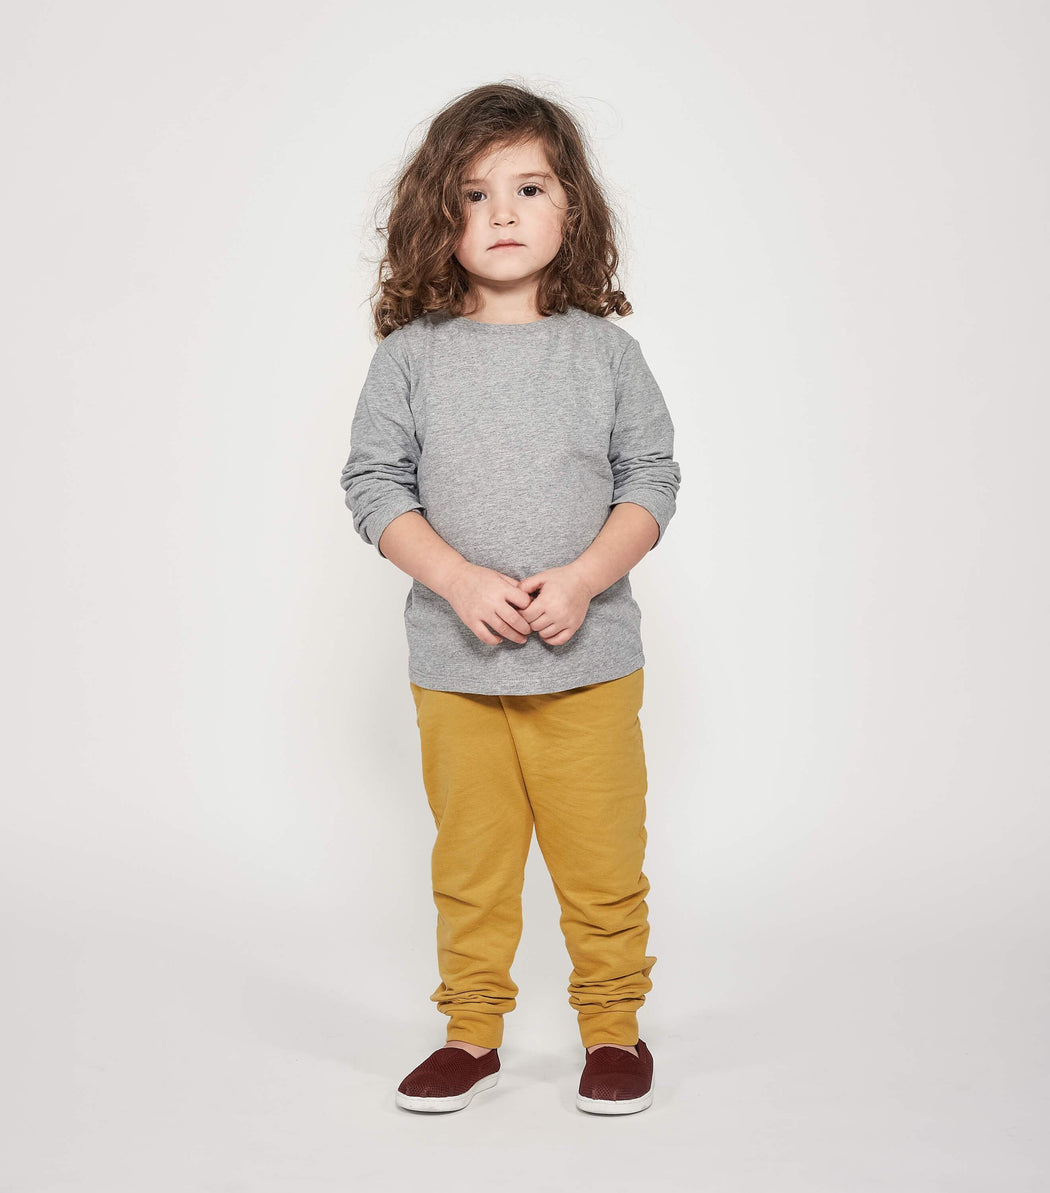 Oh-So-Easy Pants - Honey Gold | Trousers & Shots | ORBASICS | [product_tag] - Fair Bazaar Ethical Living